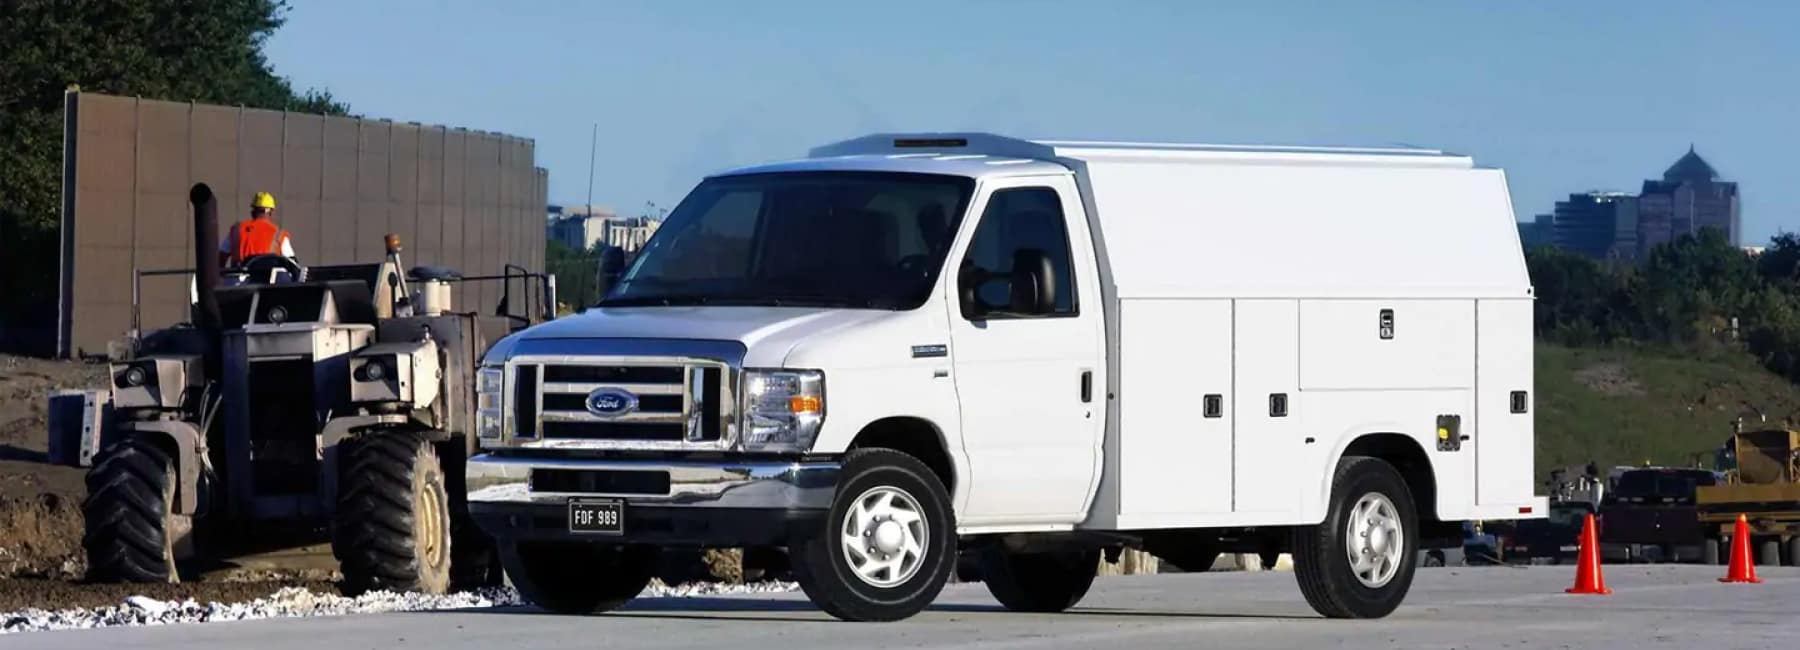 The 2019 Ford E-Series Cutaway available at Sutton Ford Commercial & Fleet